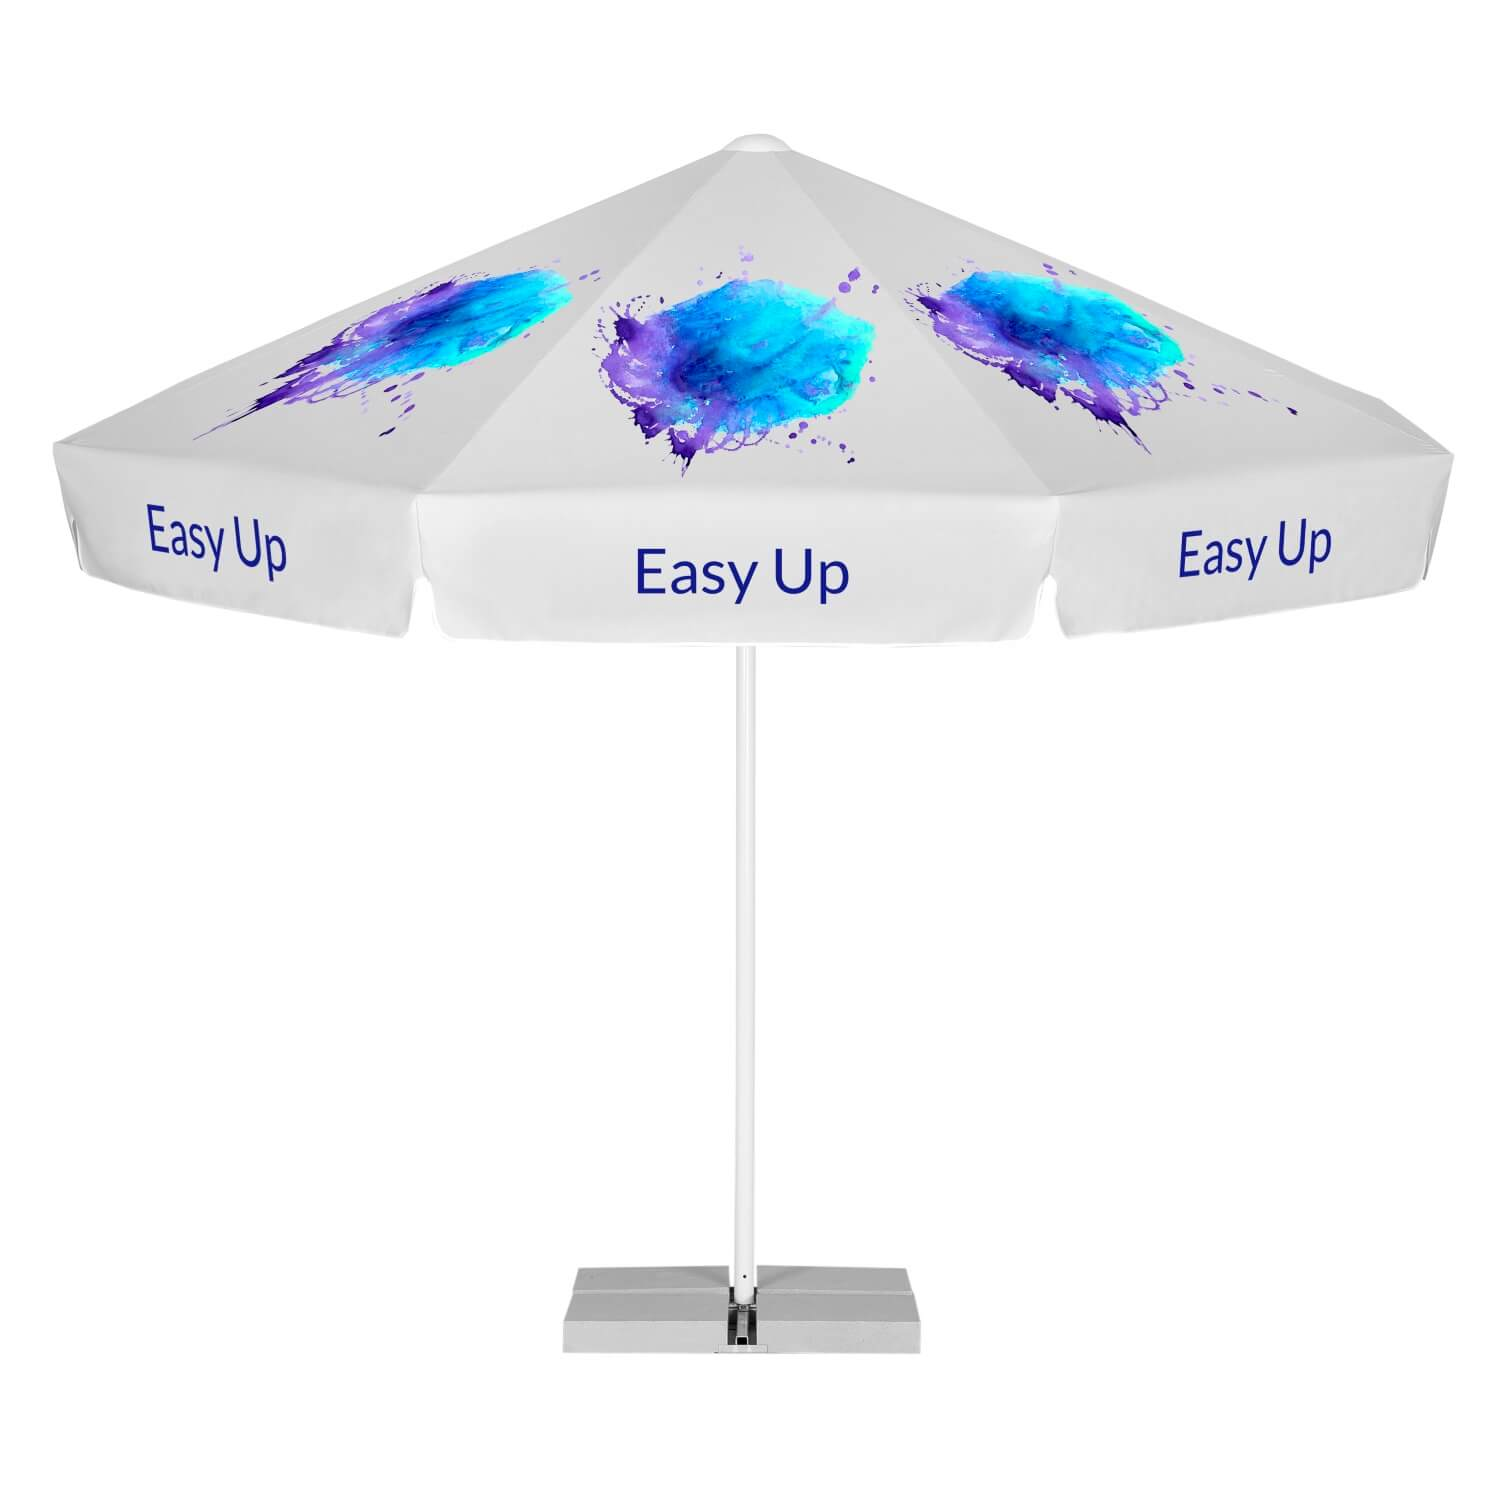 Promotional Parasols Easy Up 3m with valance